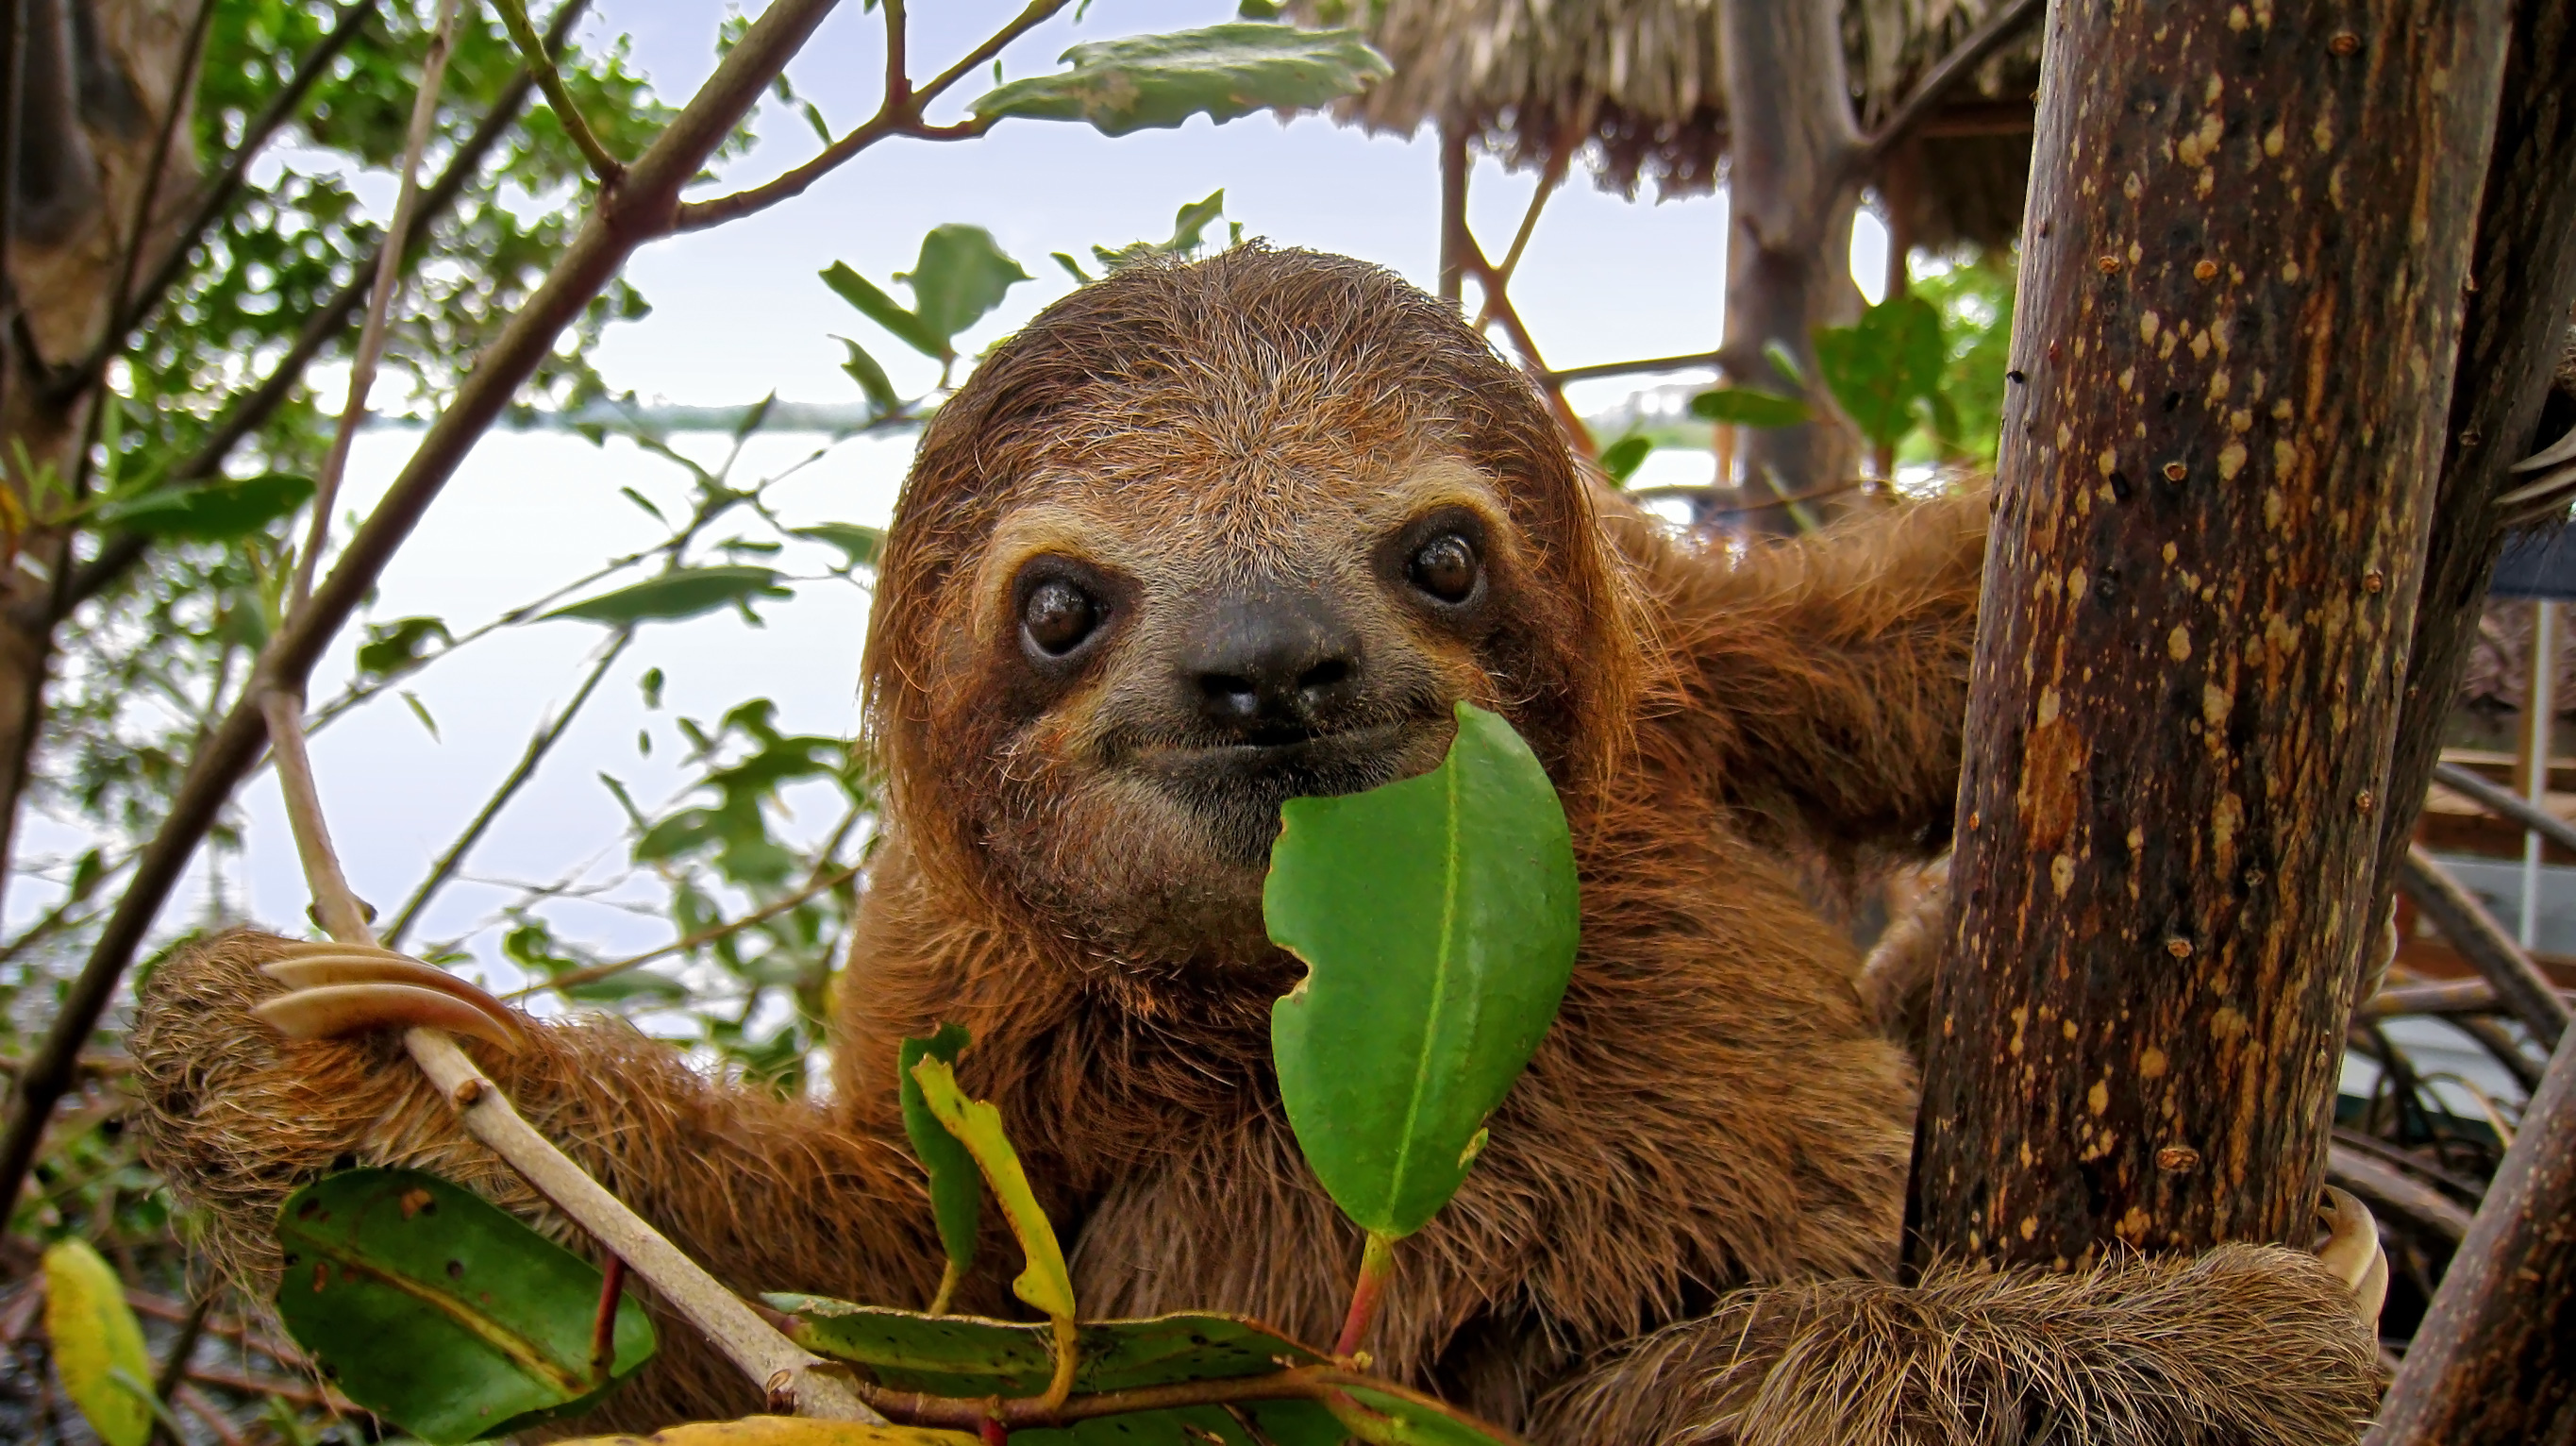 Sloth eating a leaf.